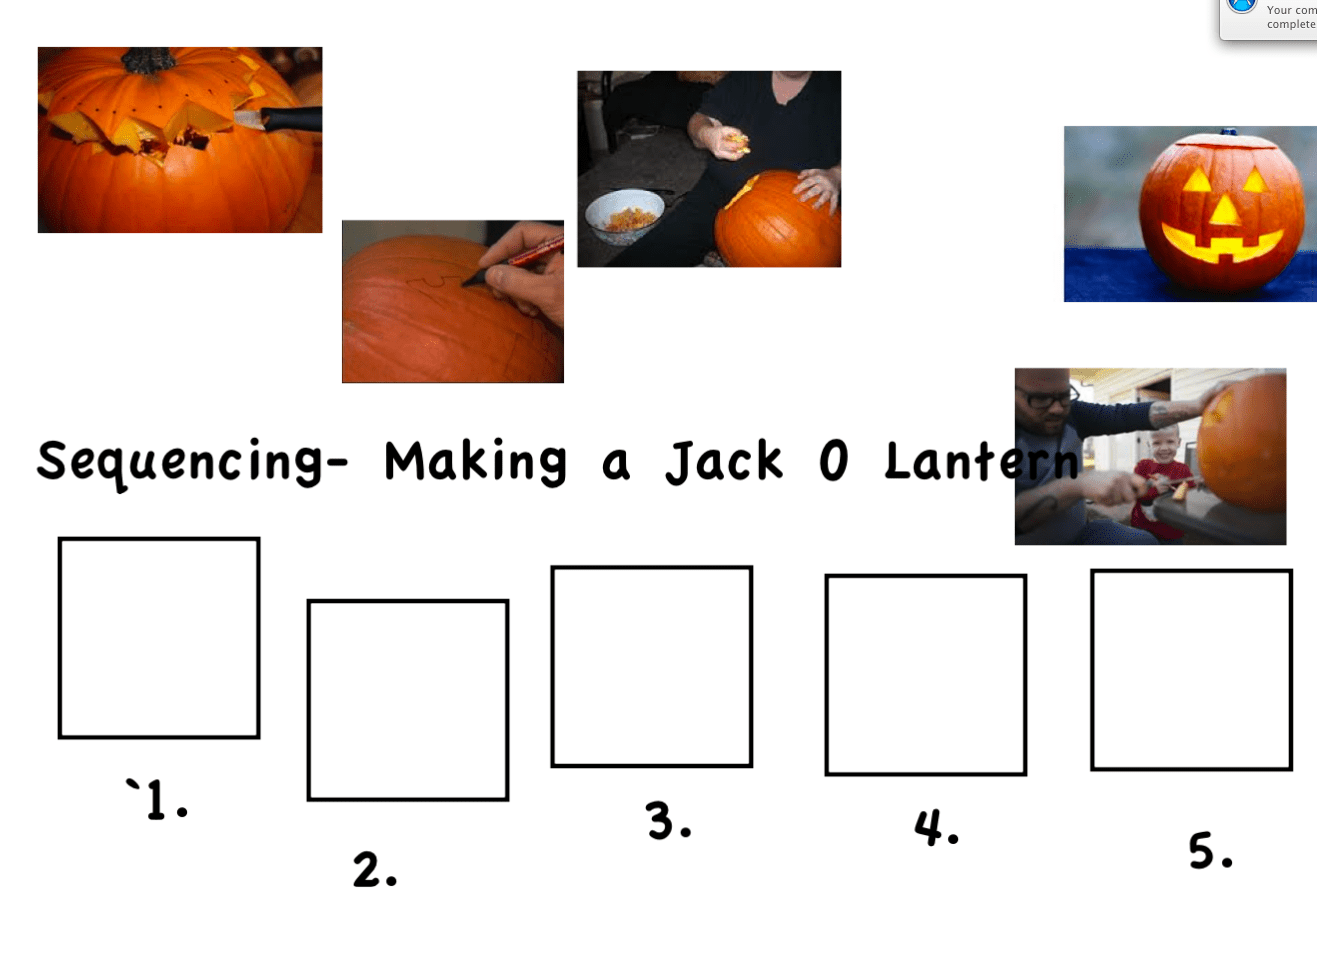 Sequencing Carving A Jack O Lantern Smart Notebook